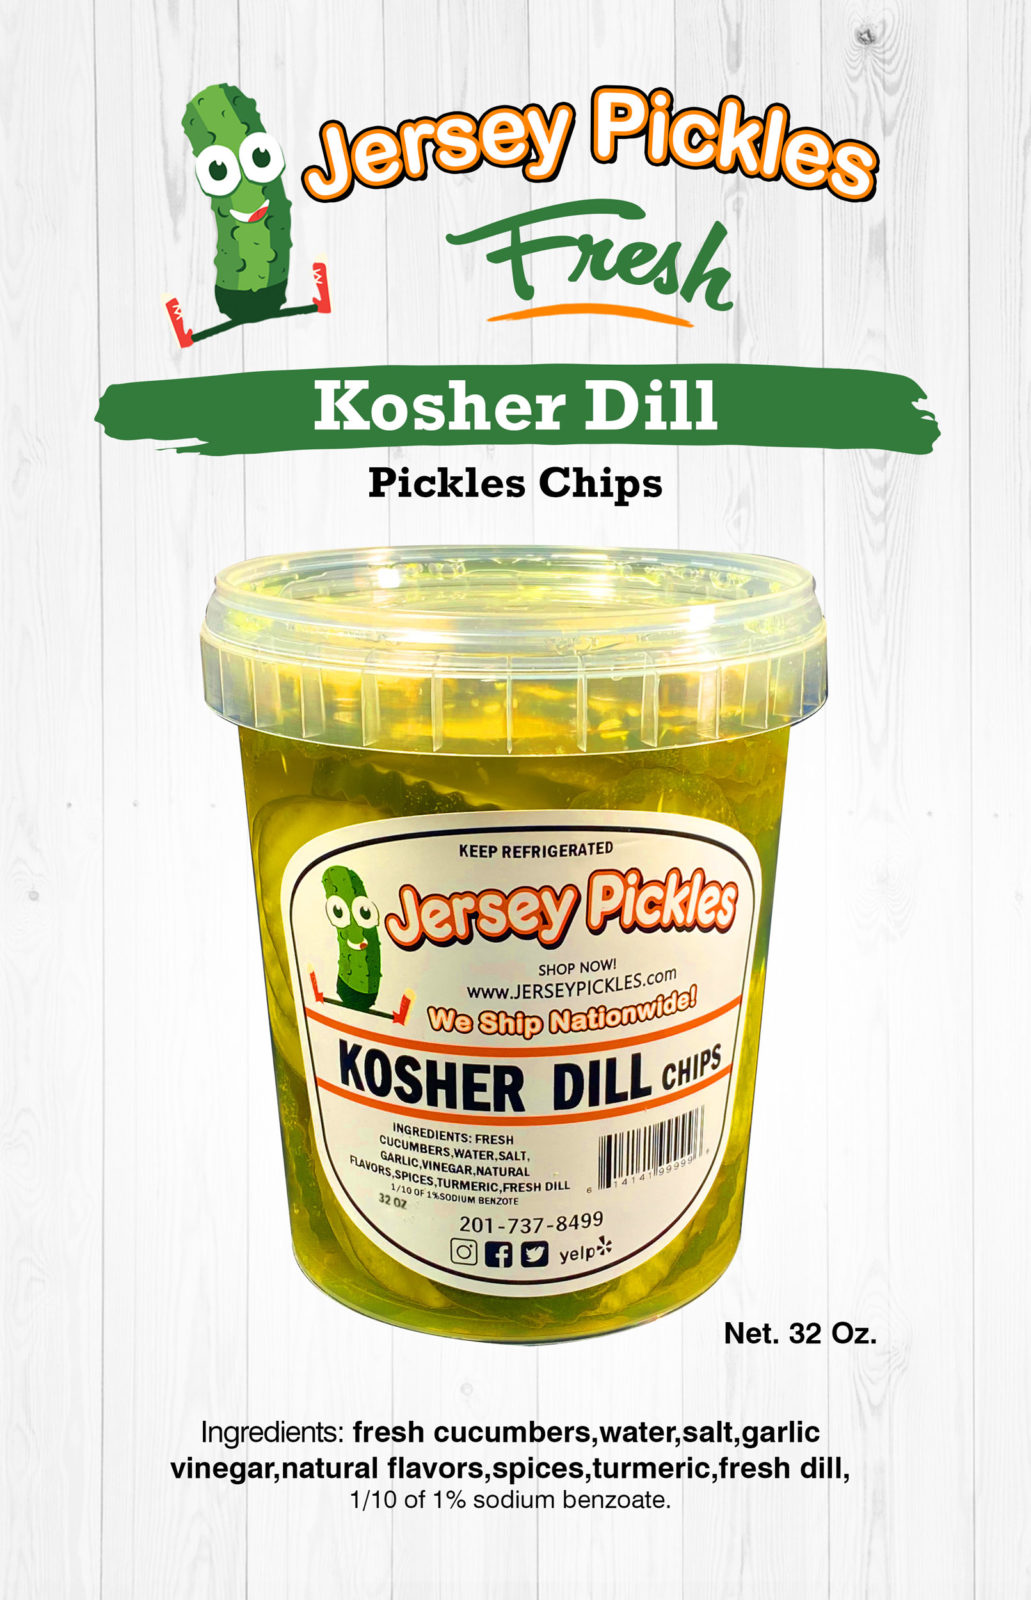 Kosher Dill Chips